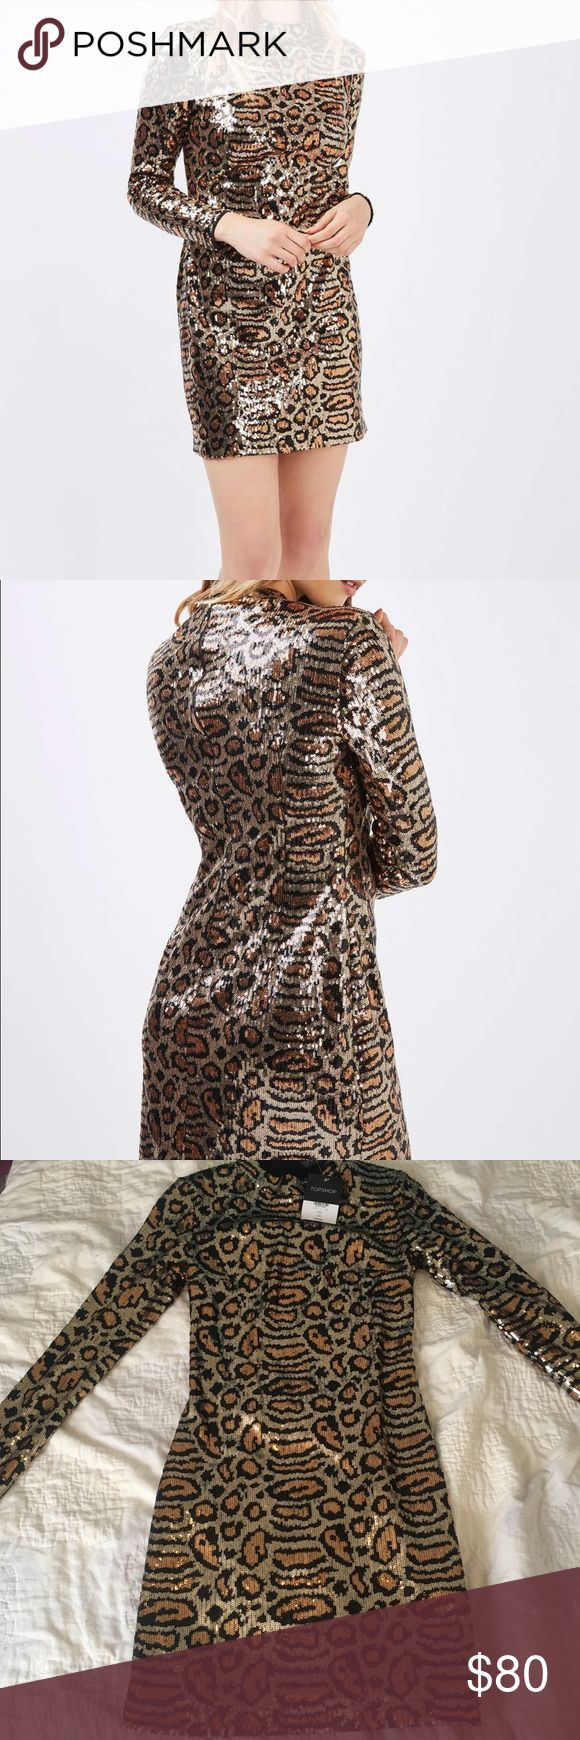 NWT Topshop Animal Print Sequin Dress. Size US 2 NWT Topshop Sequin Dress. Great for a night out! Topshop Dresses Long Sleeve